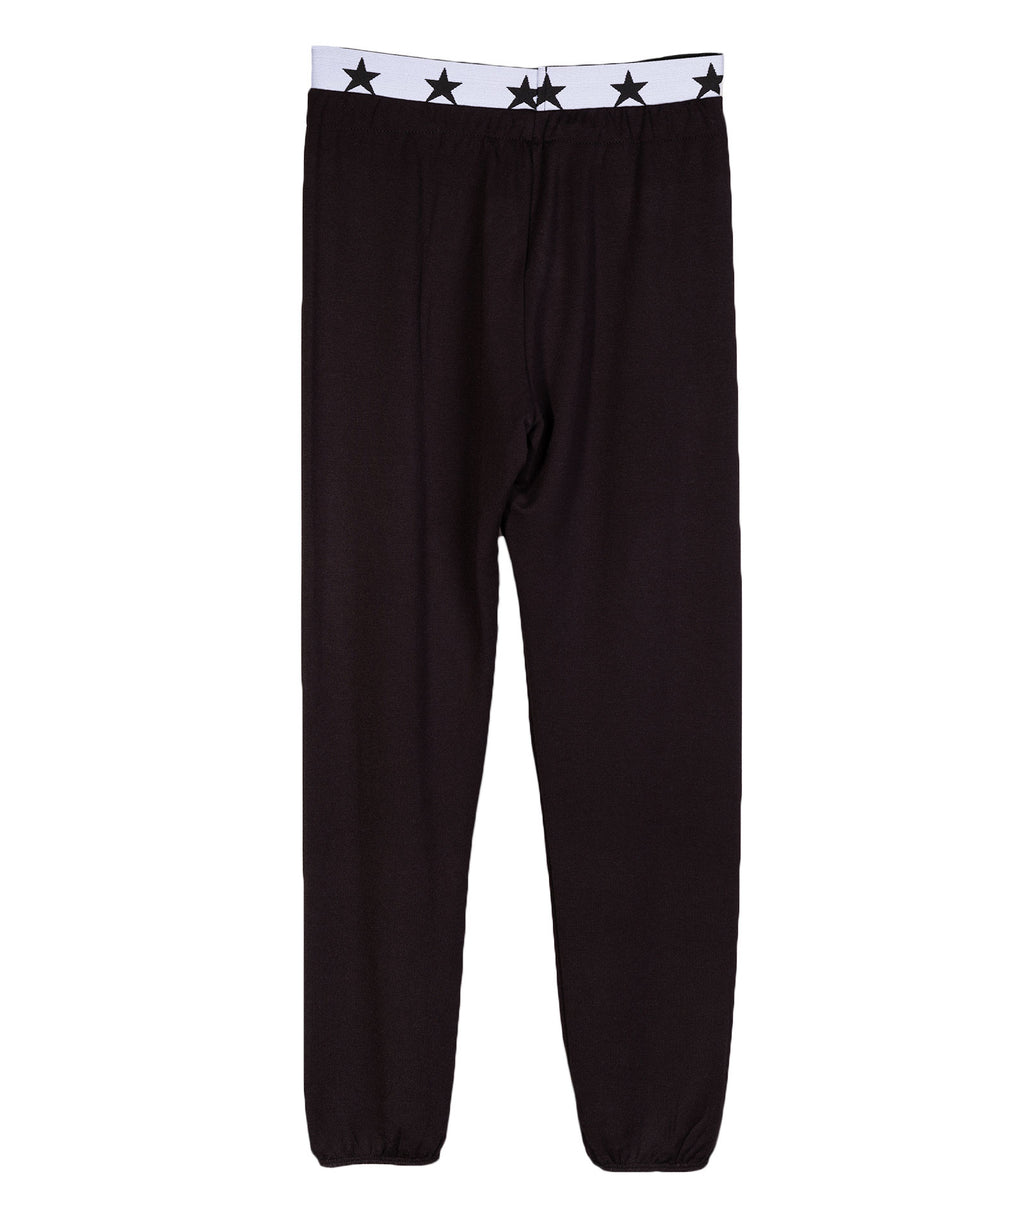 Katie NYC Girls Black Stars Sweatpants